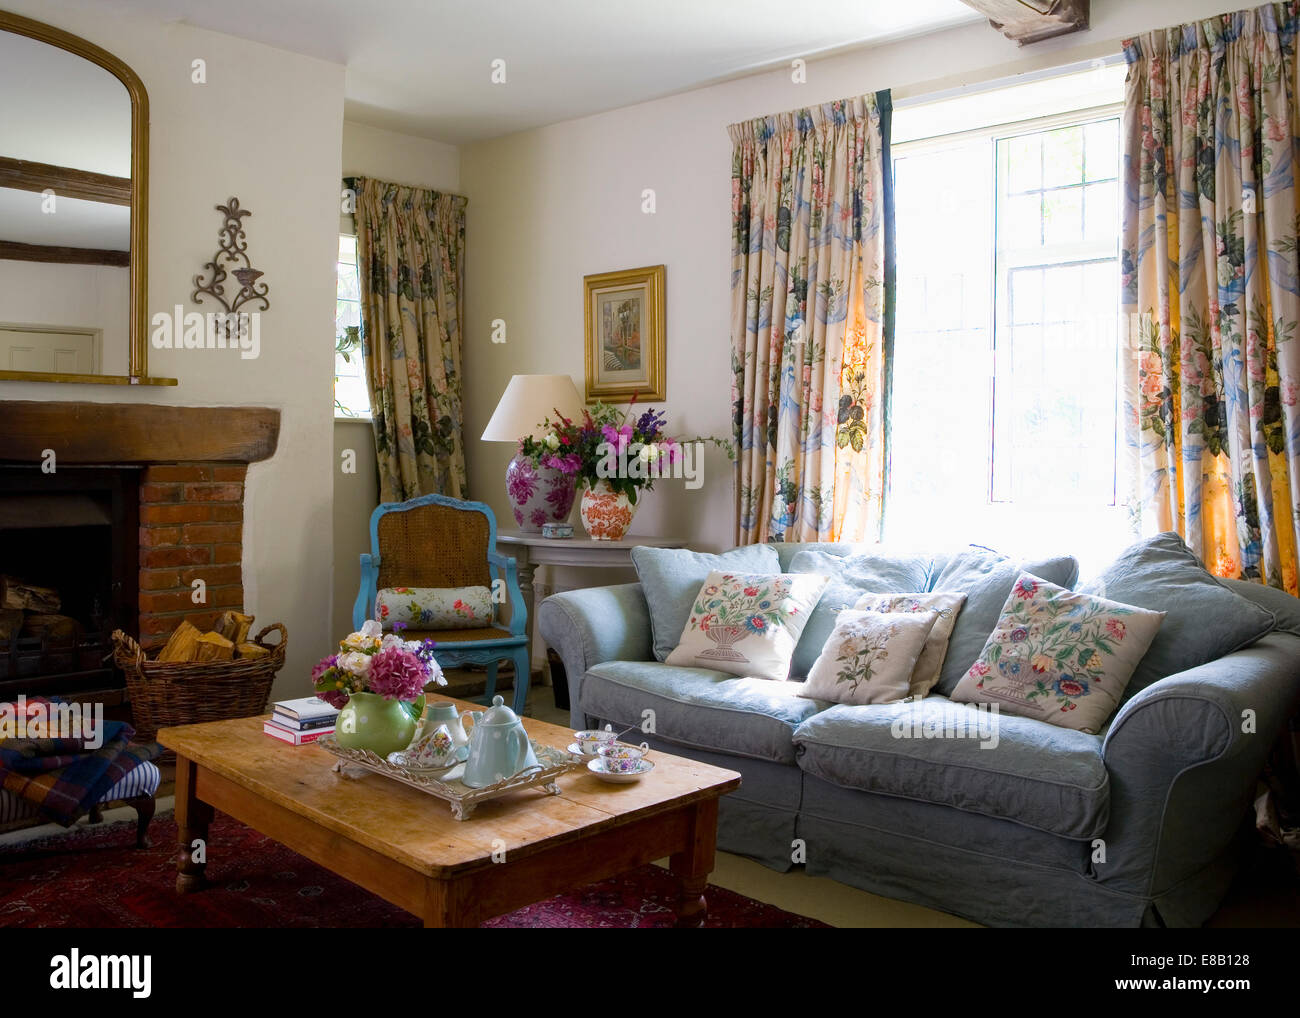 Blue sofa in front of window with floral curtains in country